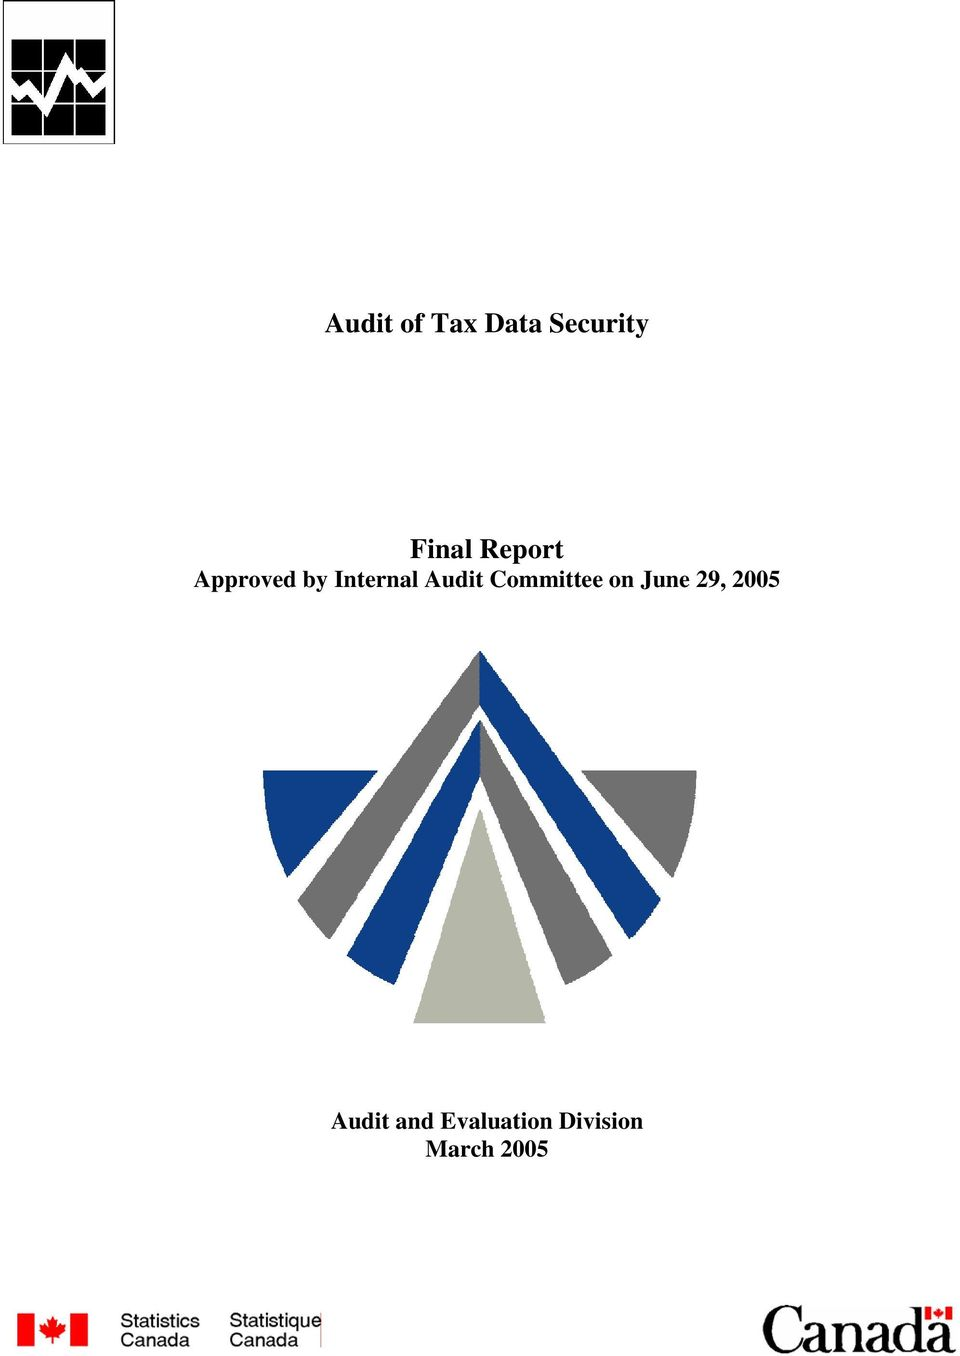 on June 29, 2005 Audit and